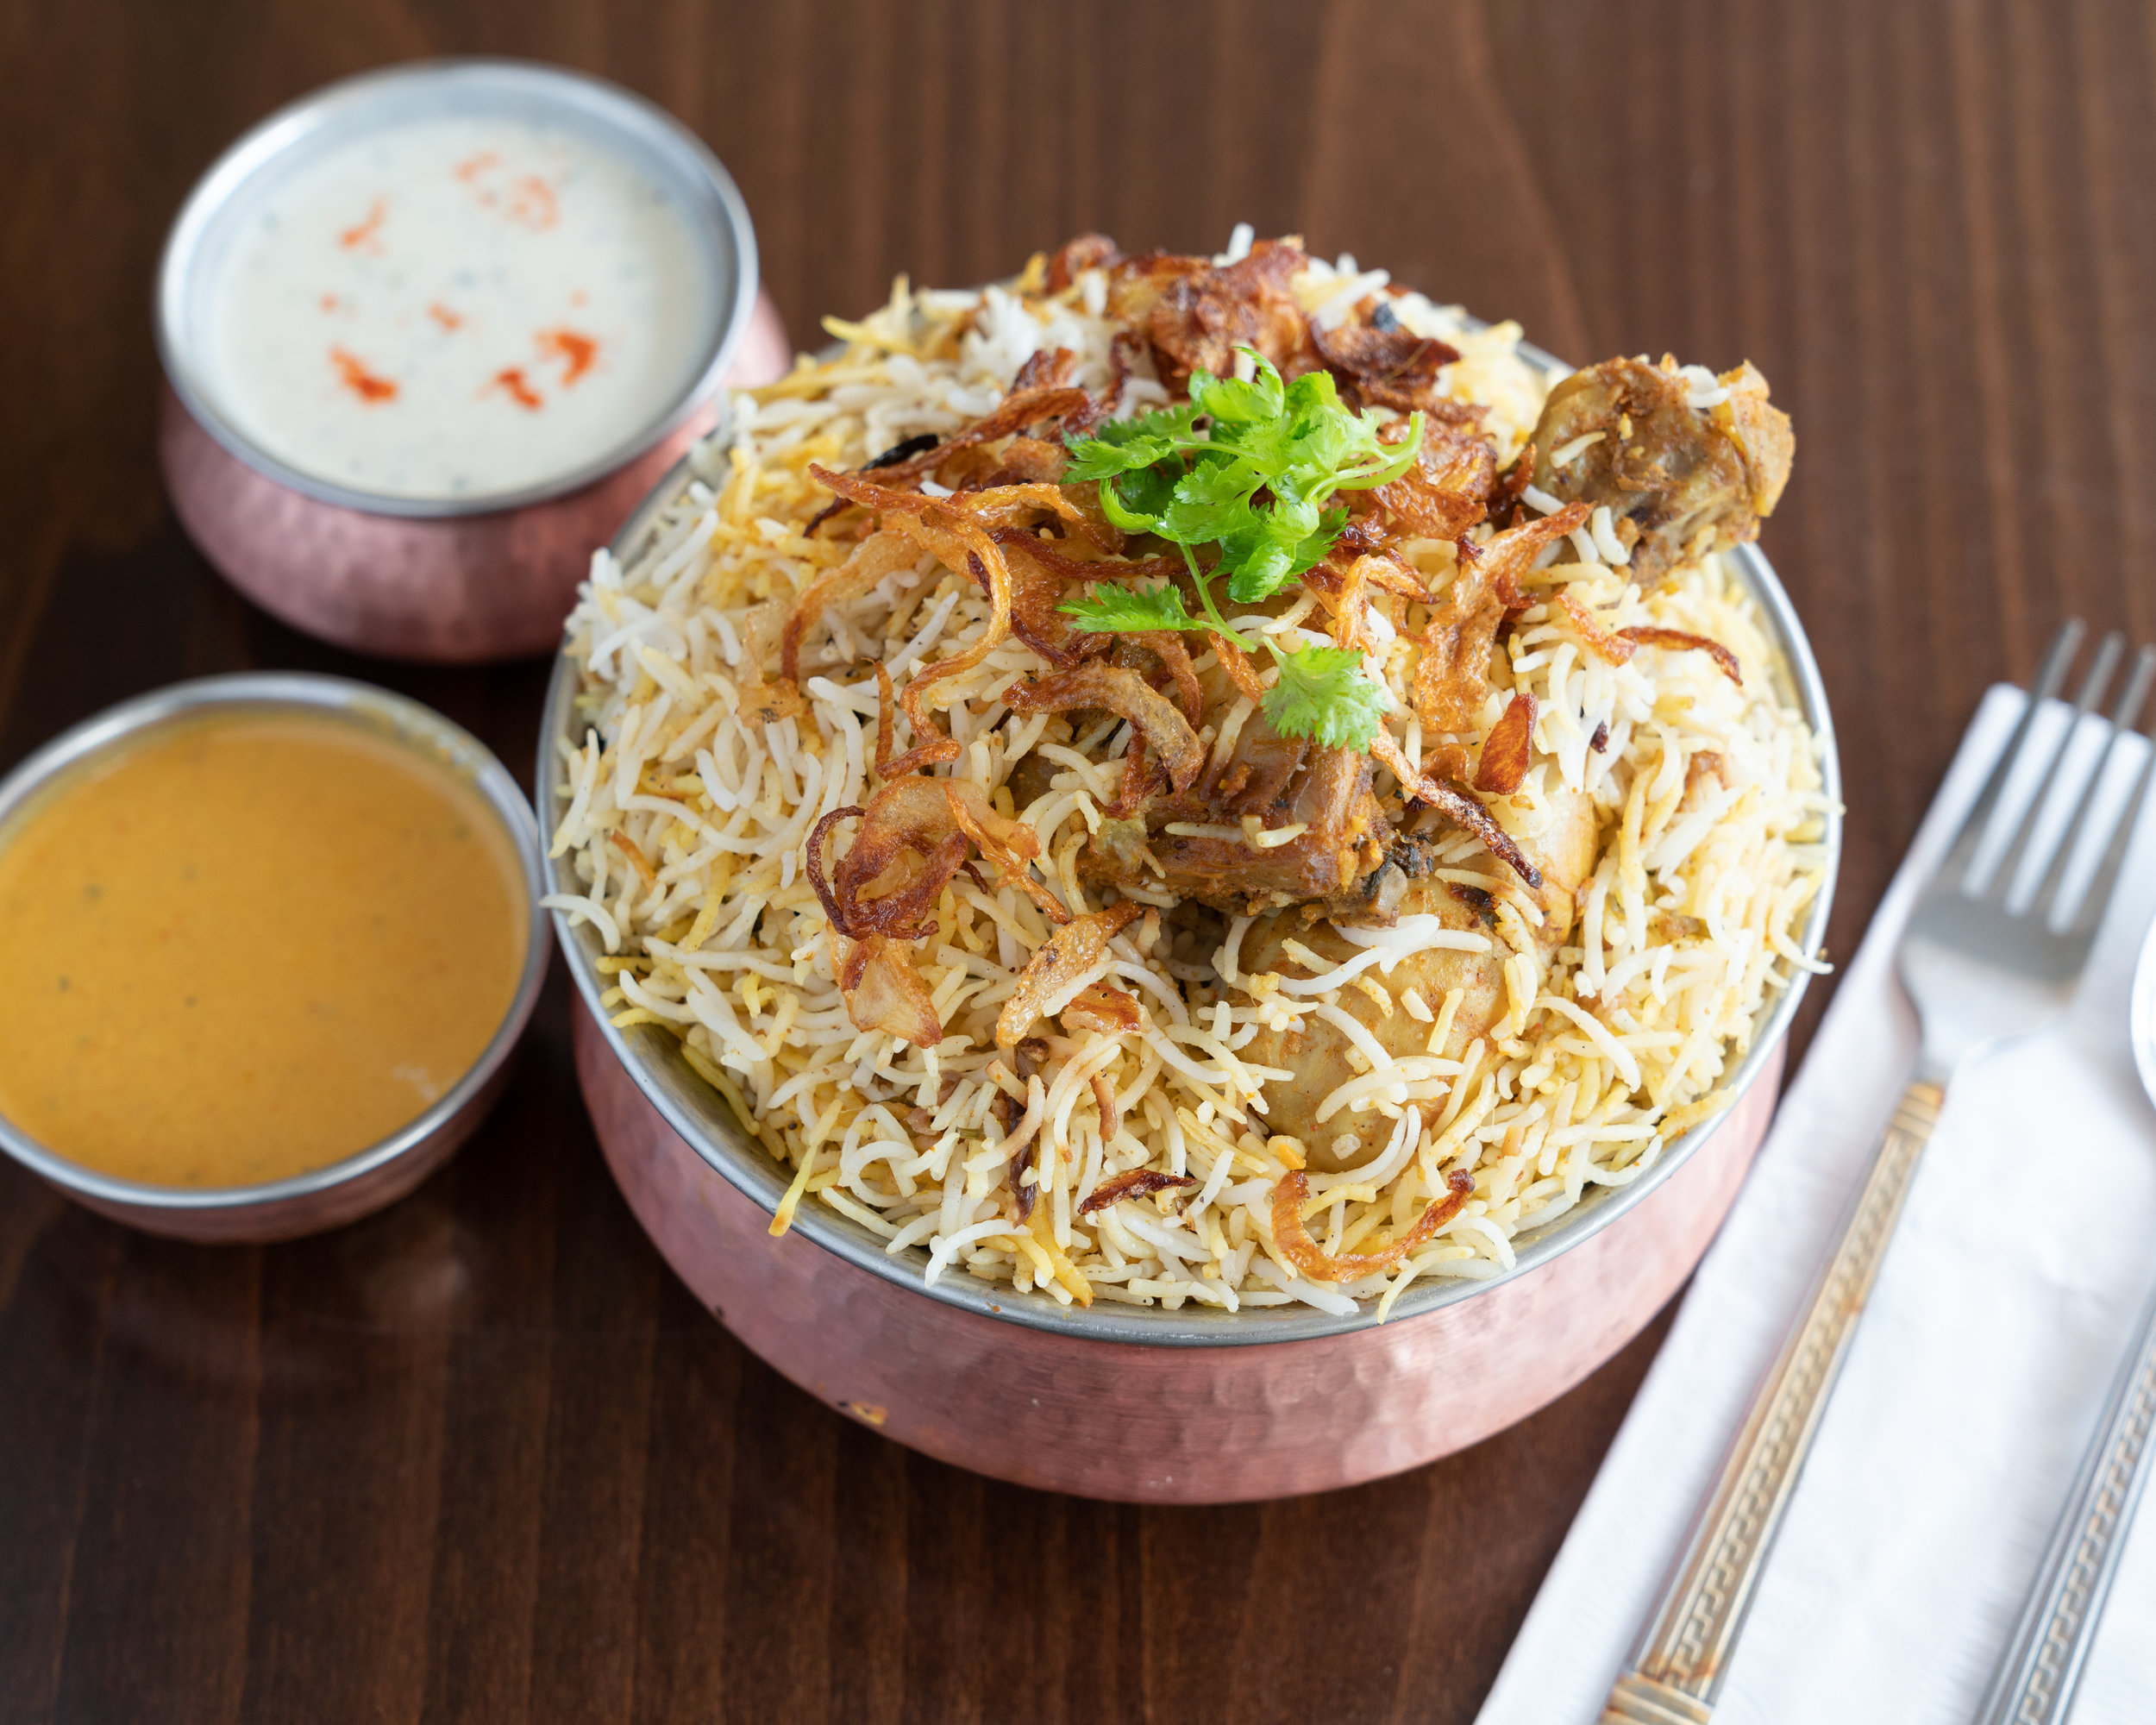 Hyderabad_Biryani_Hut_Dum_Chicken_Biryani_2880x2304-1.jpg